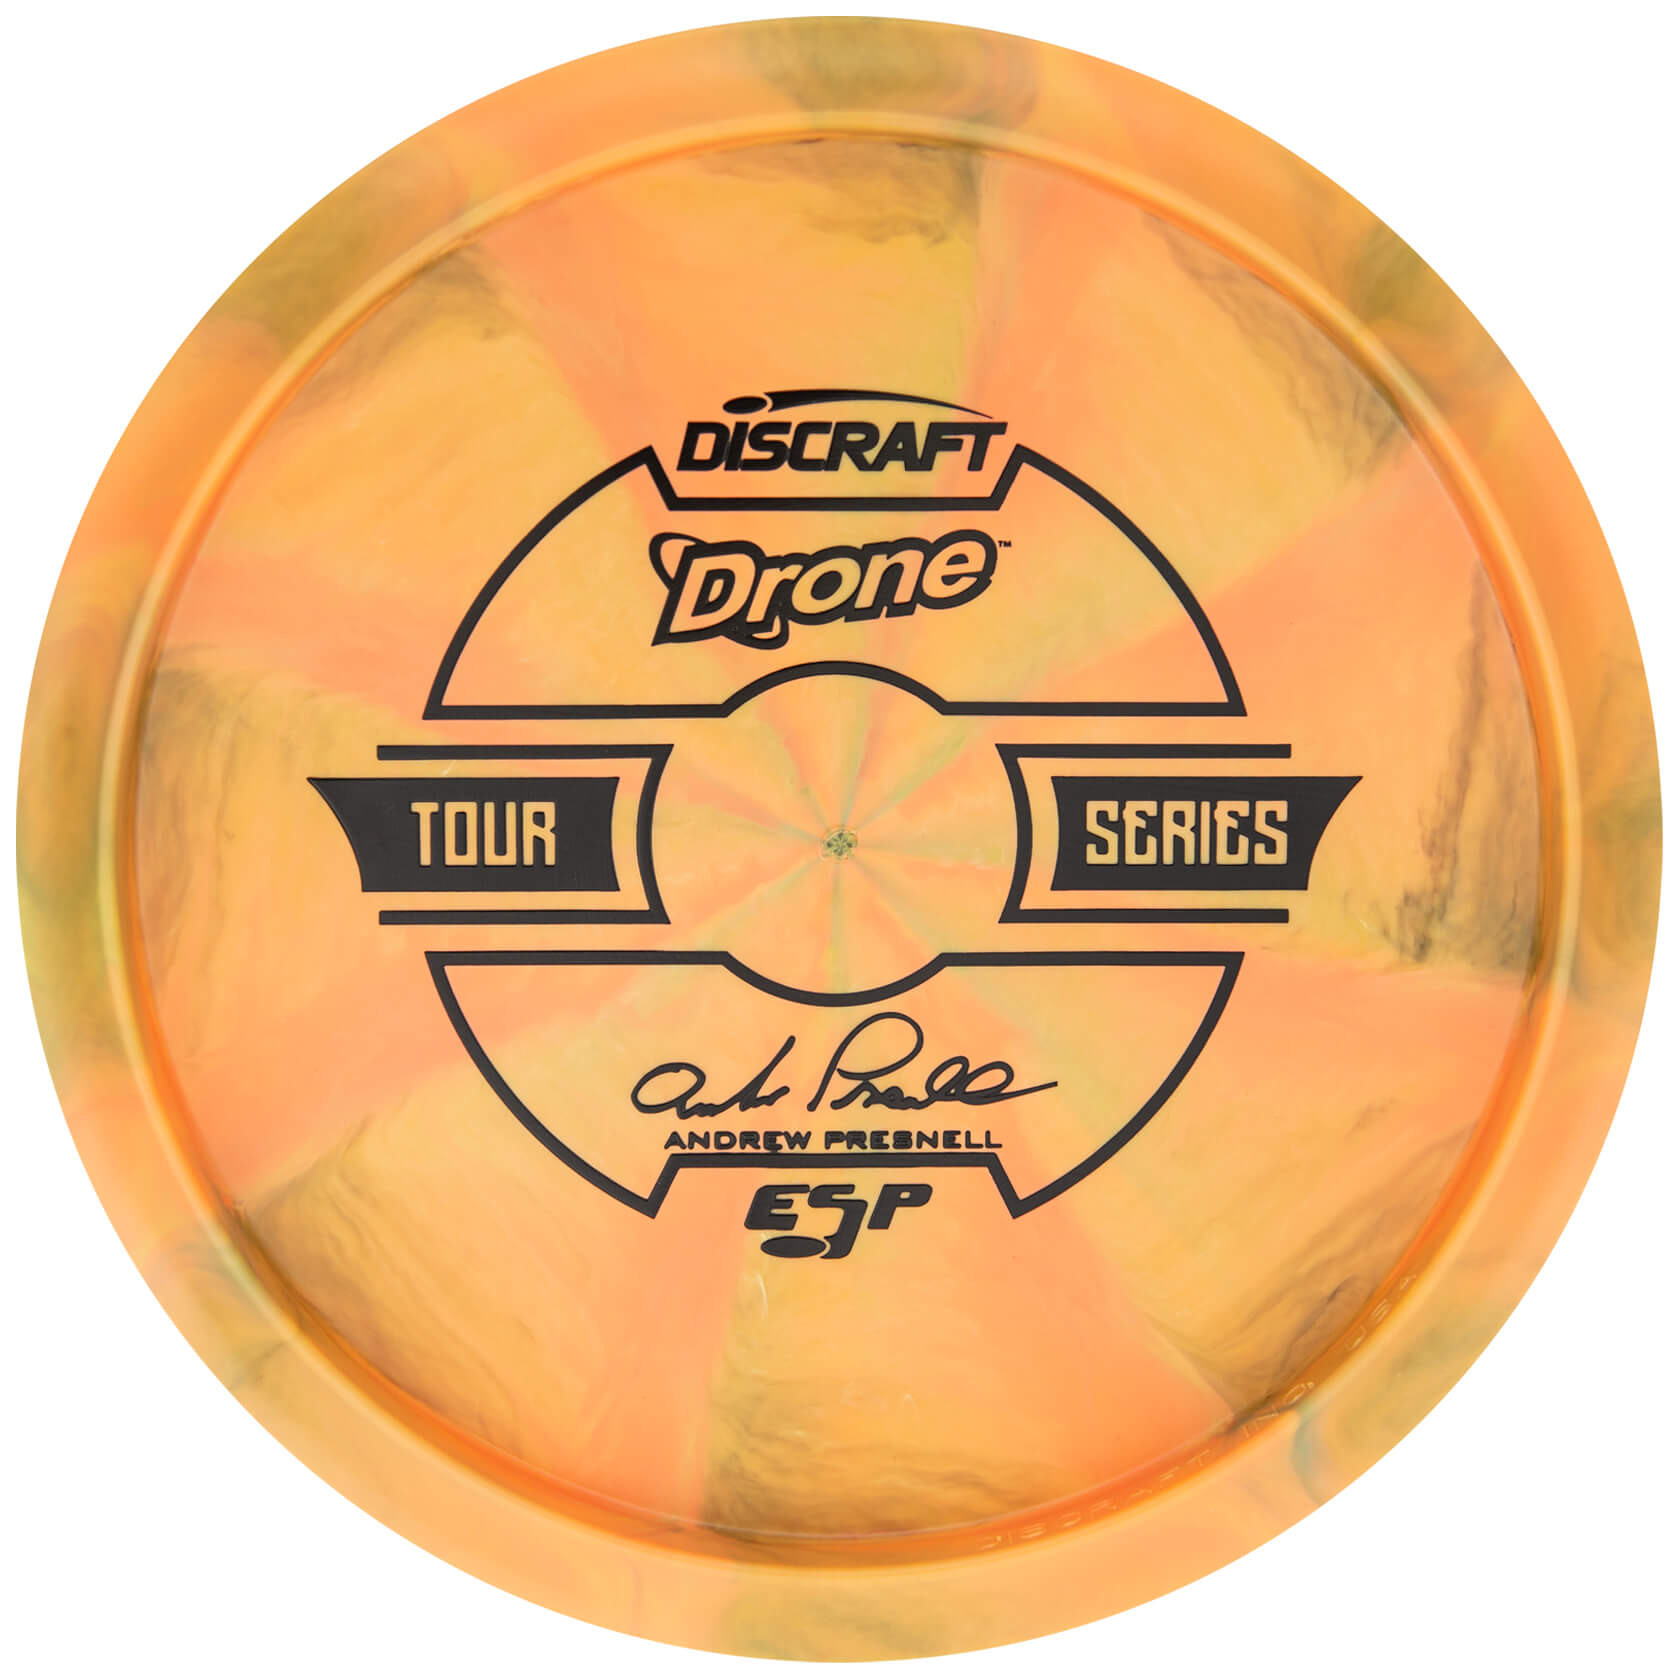 Discraft Swirly ESP Drone Andrew Presnell 2019 Tour Series